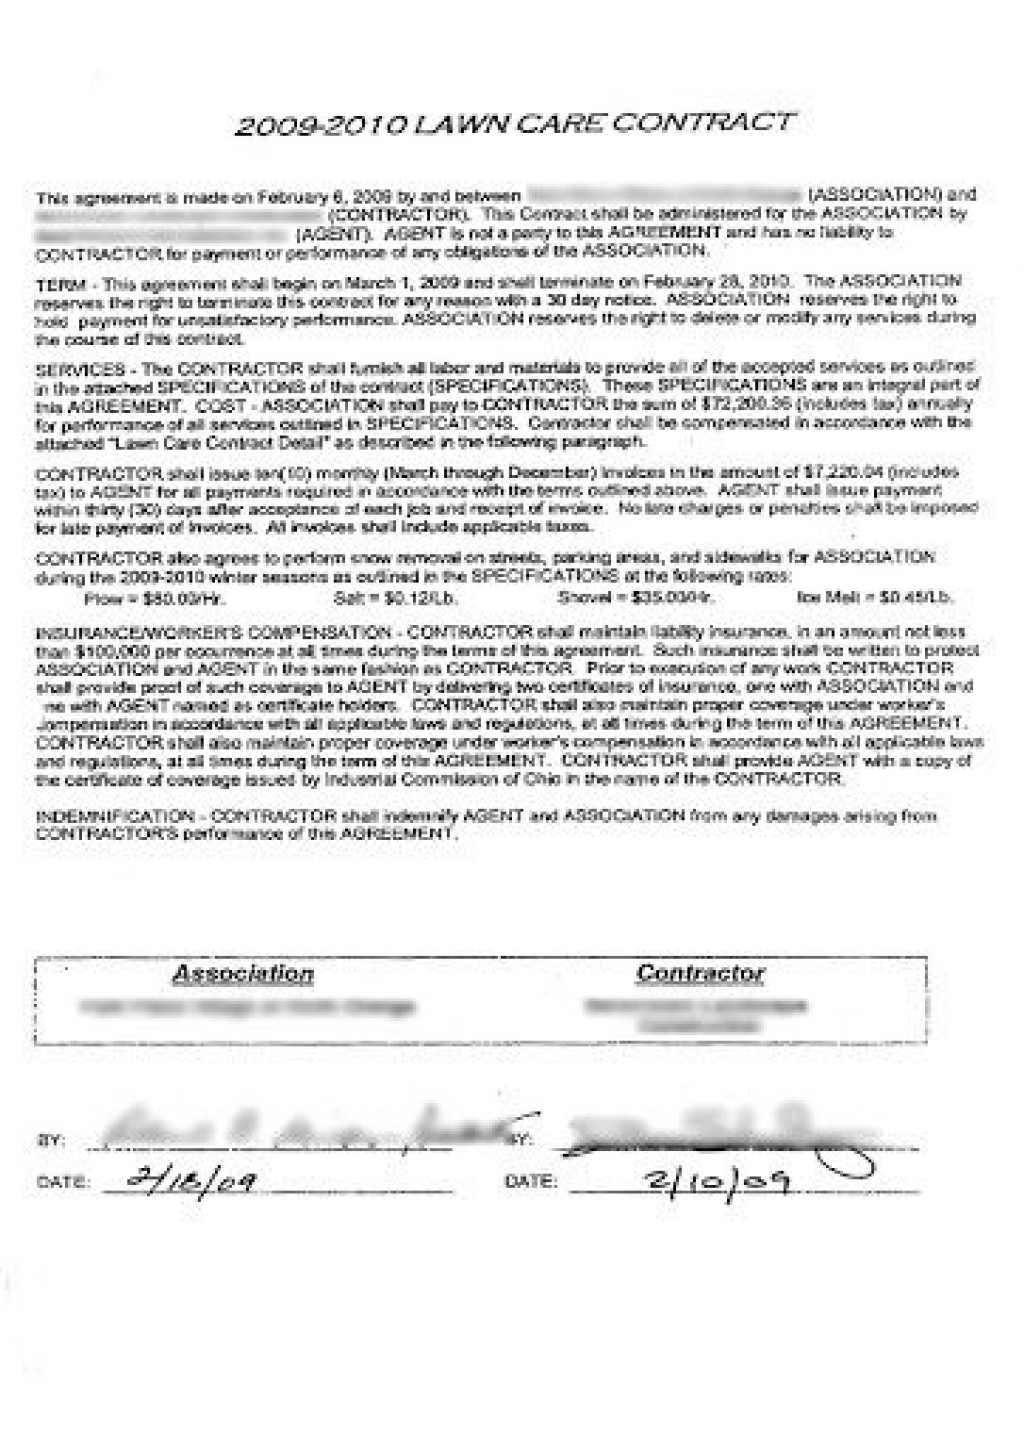 005 Shocking Commercial Lawn Care Bid Template Sample Large